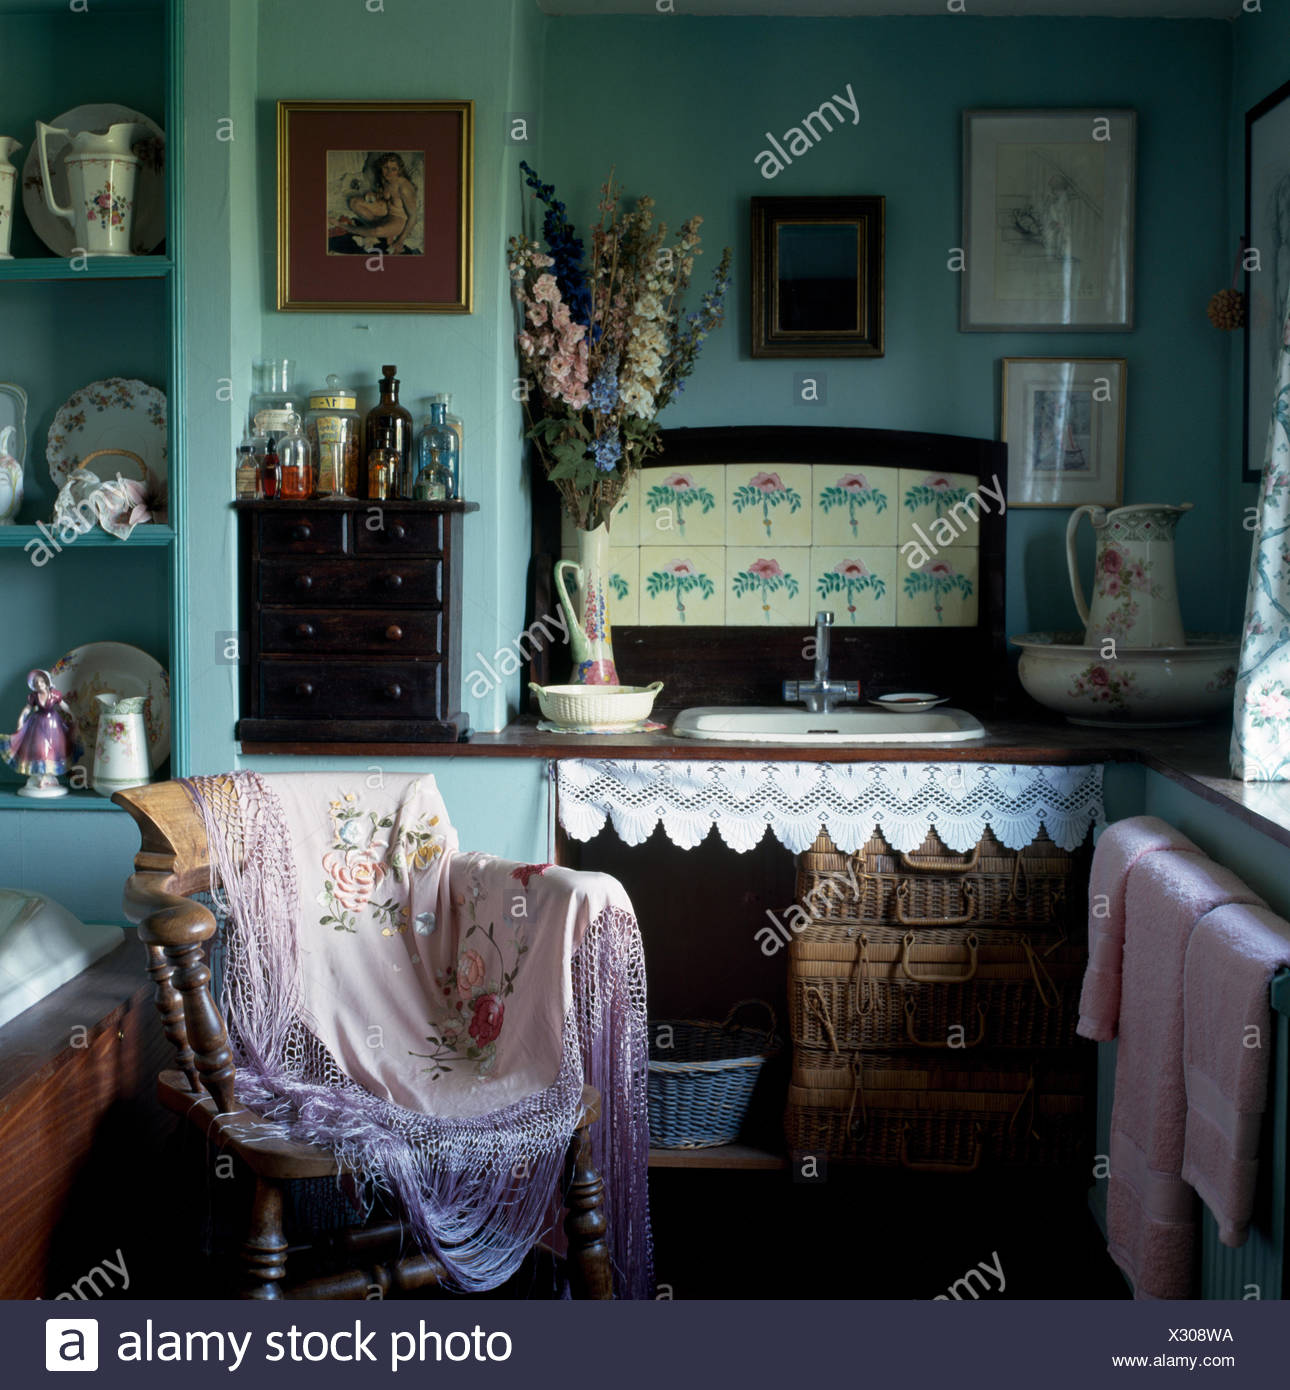 Vintage Shawl On Wooden Chair In A Pale Turquoise Victorian Style Cottage Bathroom With Old Picnic